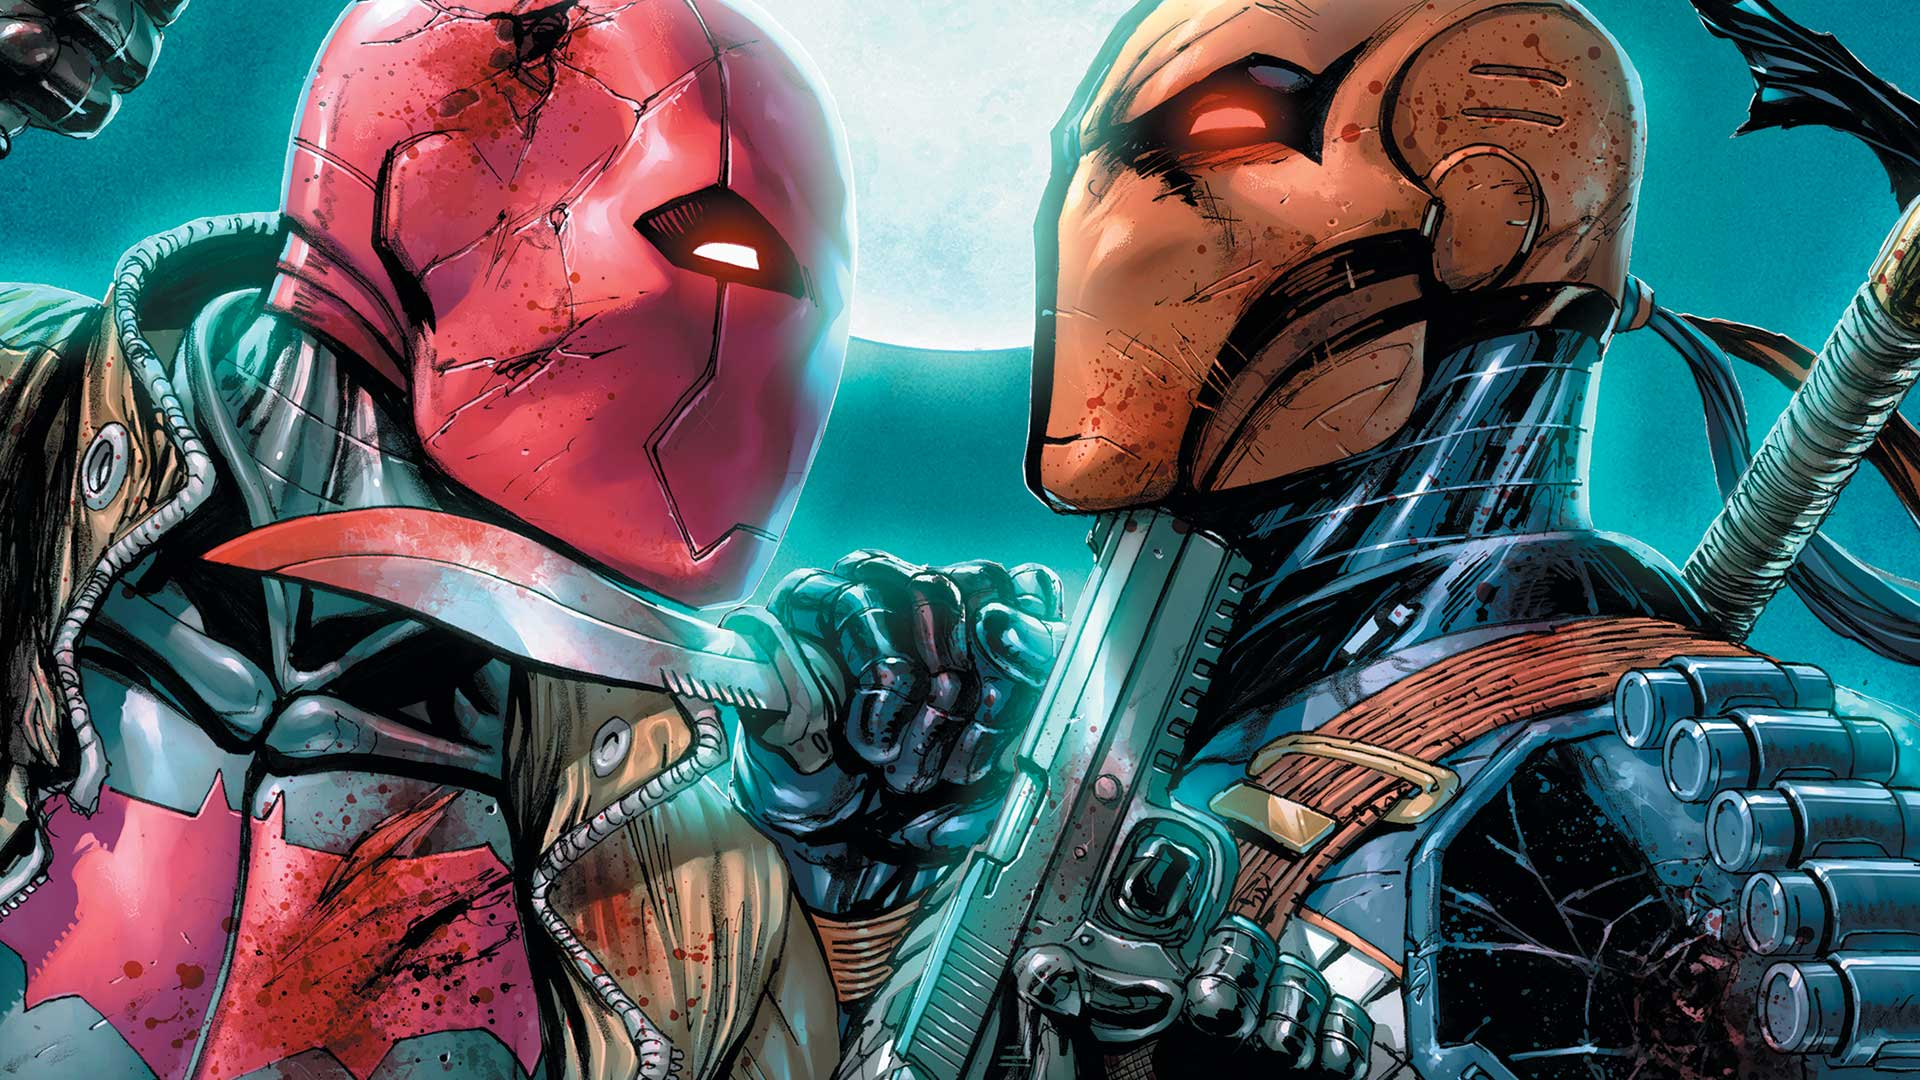 Deadshot wallpaper galleryhip com the hippest galleries - This Just Happened It S Deathstroke Vs Red Hood And More